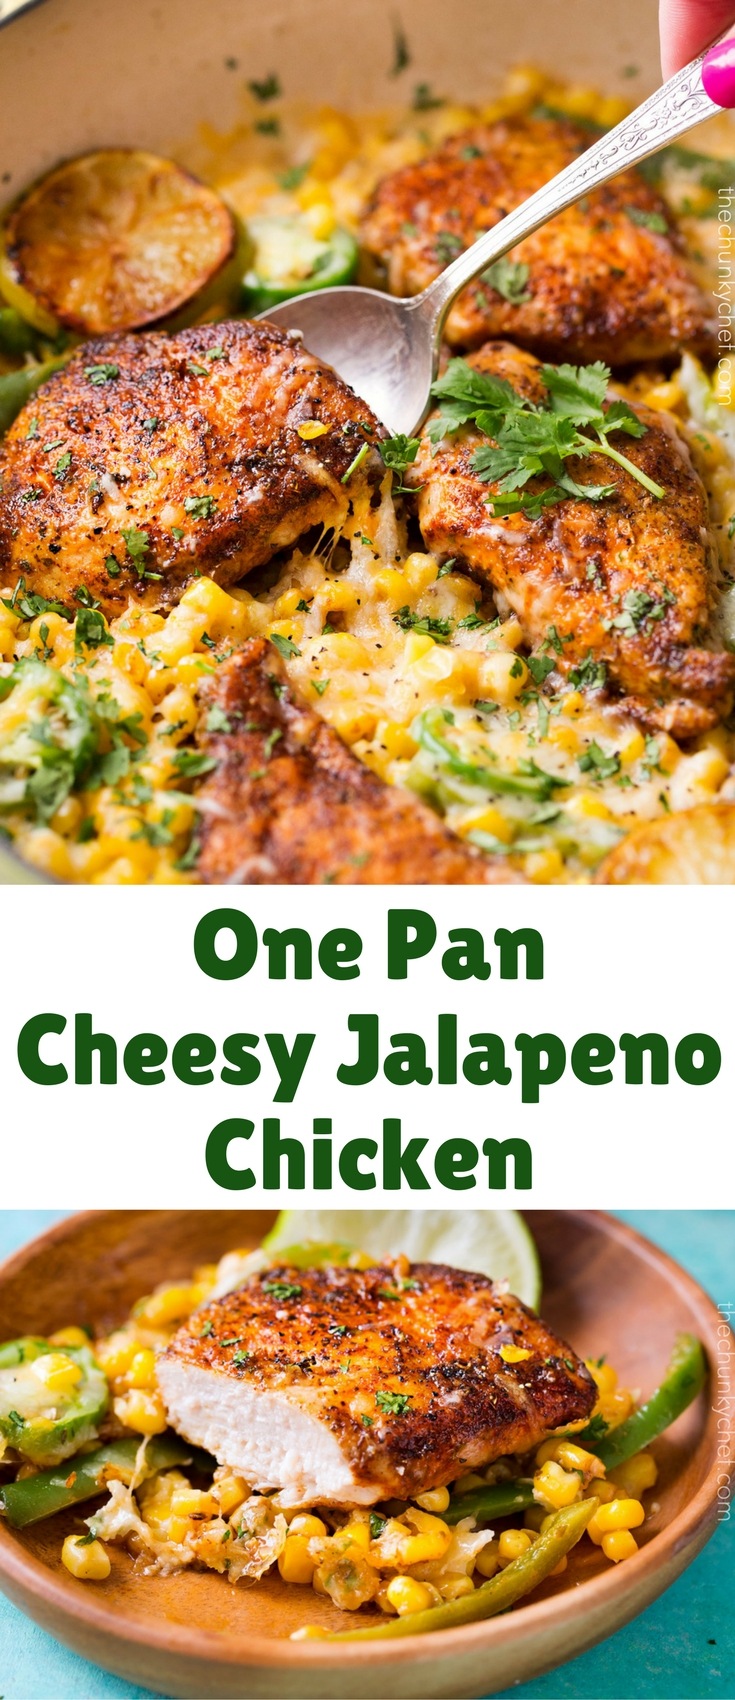 This cheesy jalapeño chicken is made in one pan, is bursting with flavor, smothered in melty cheese, and made in just 20 minutes! Try it tonight!